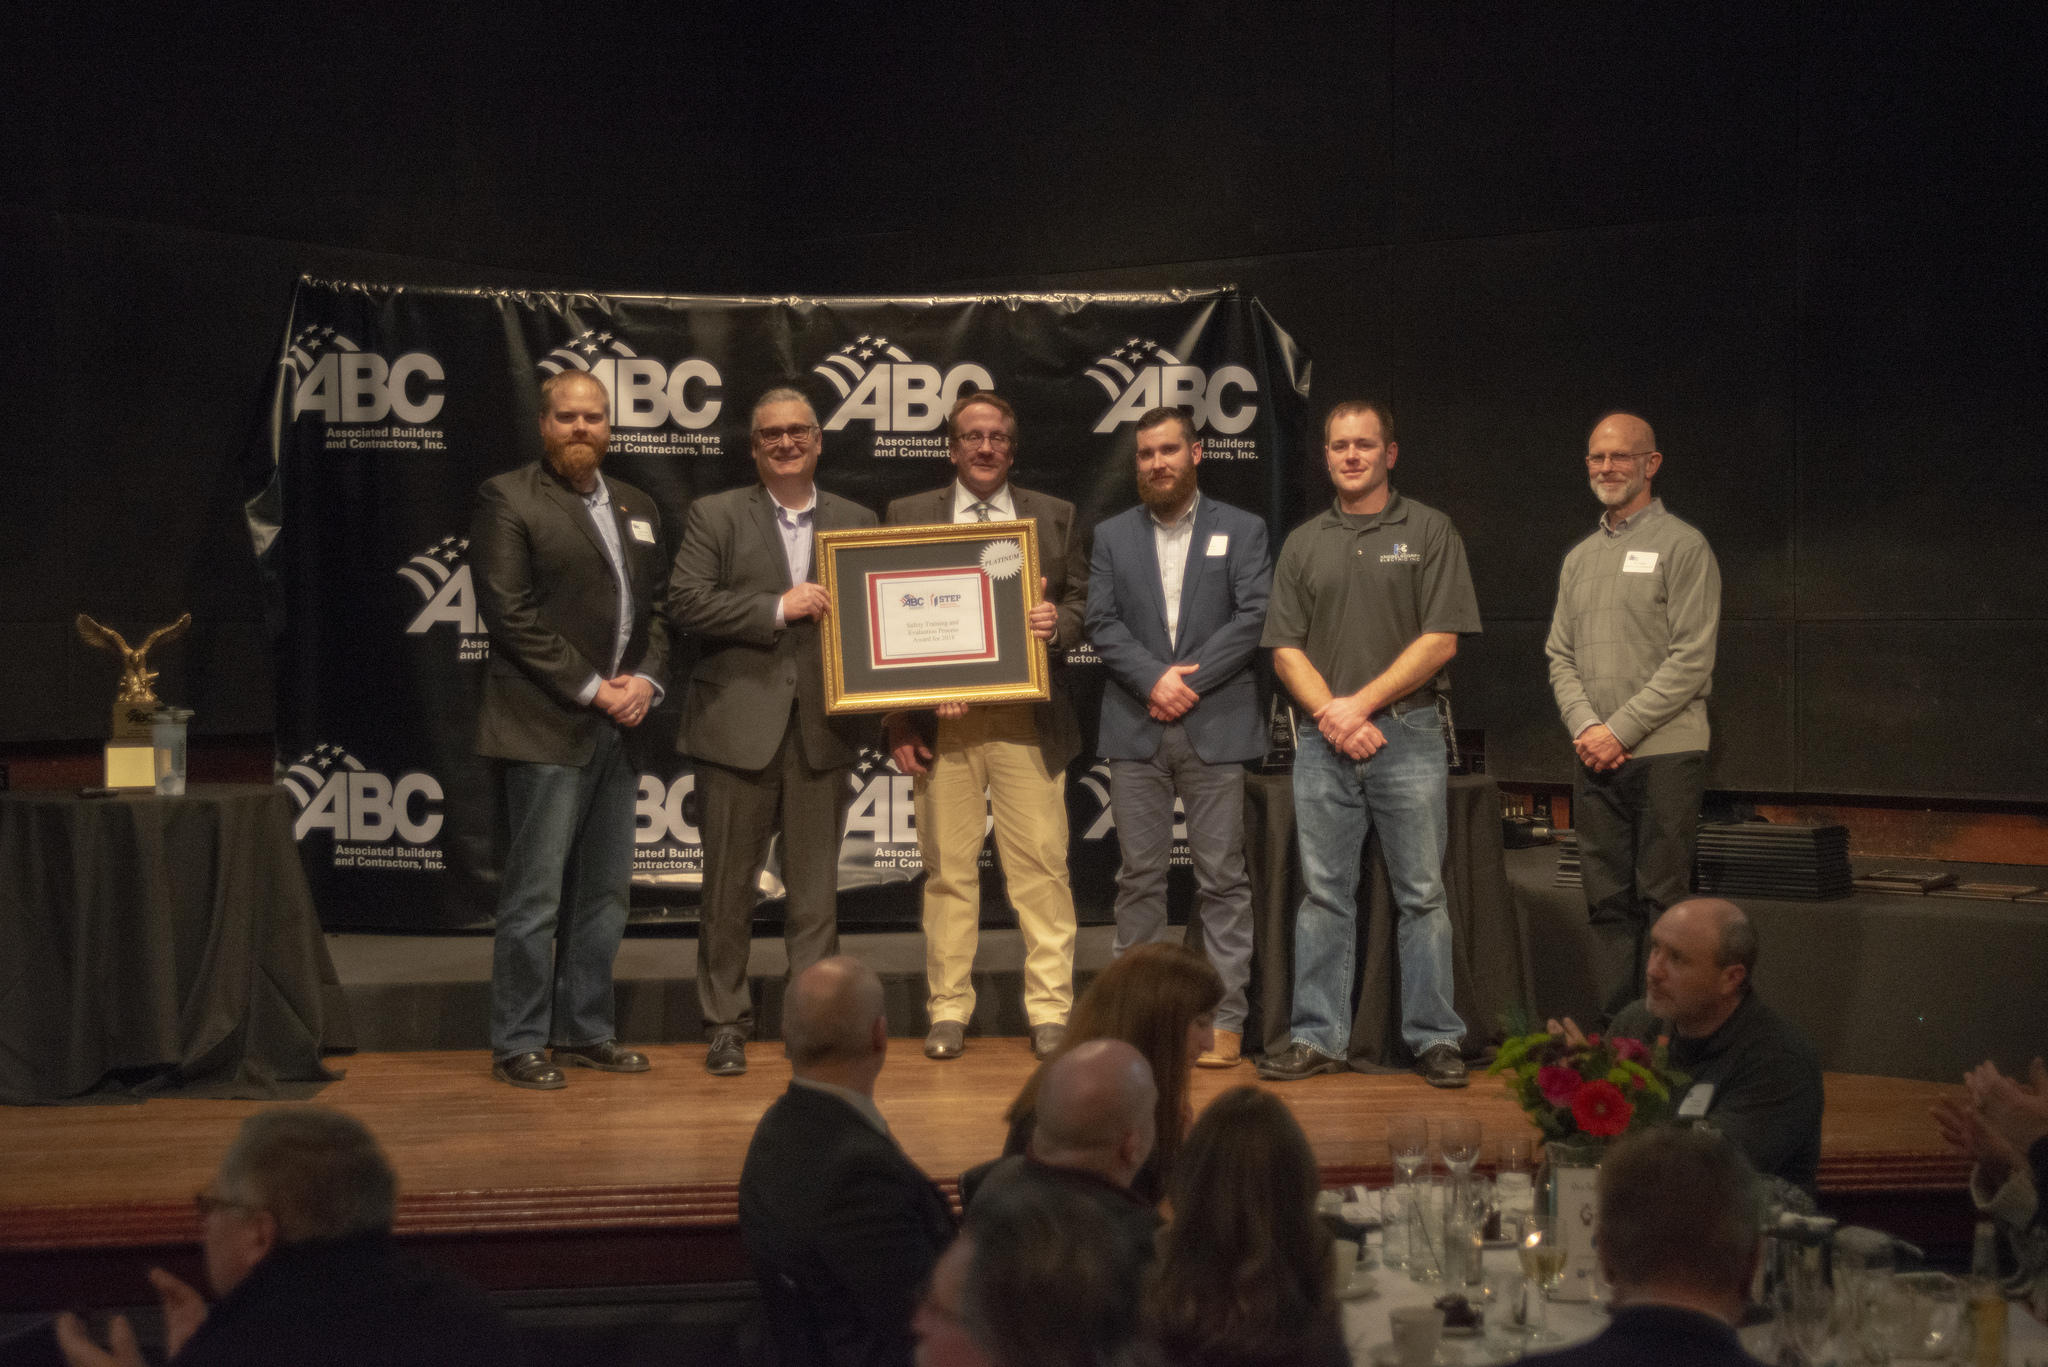 Knobelsdorff Electric, inc. receives 1st place award for excellence in construction project